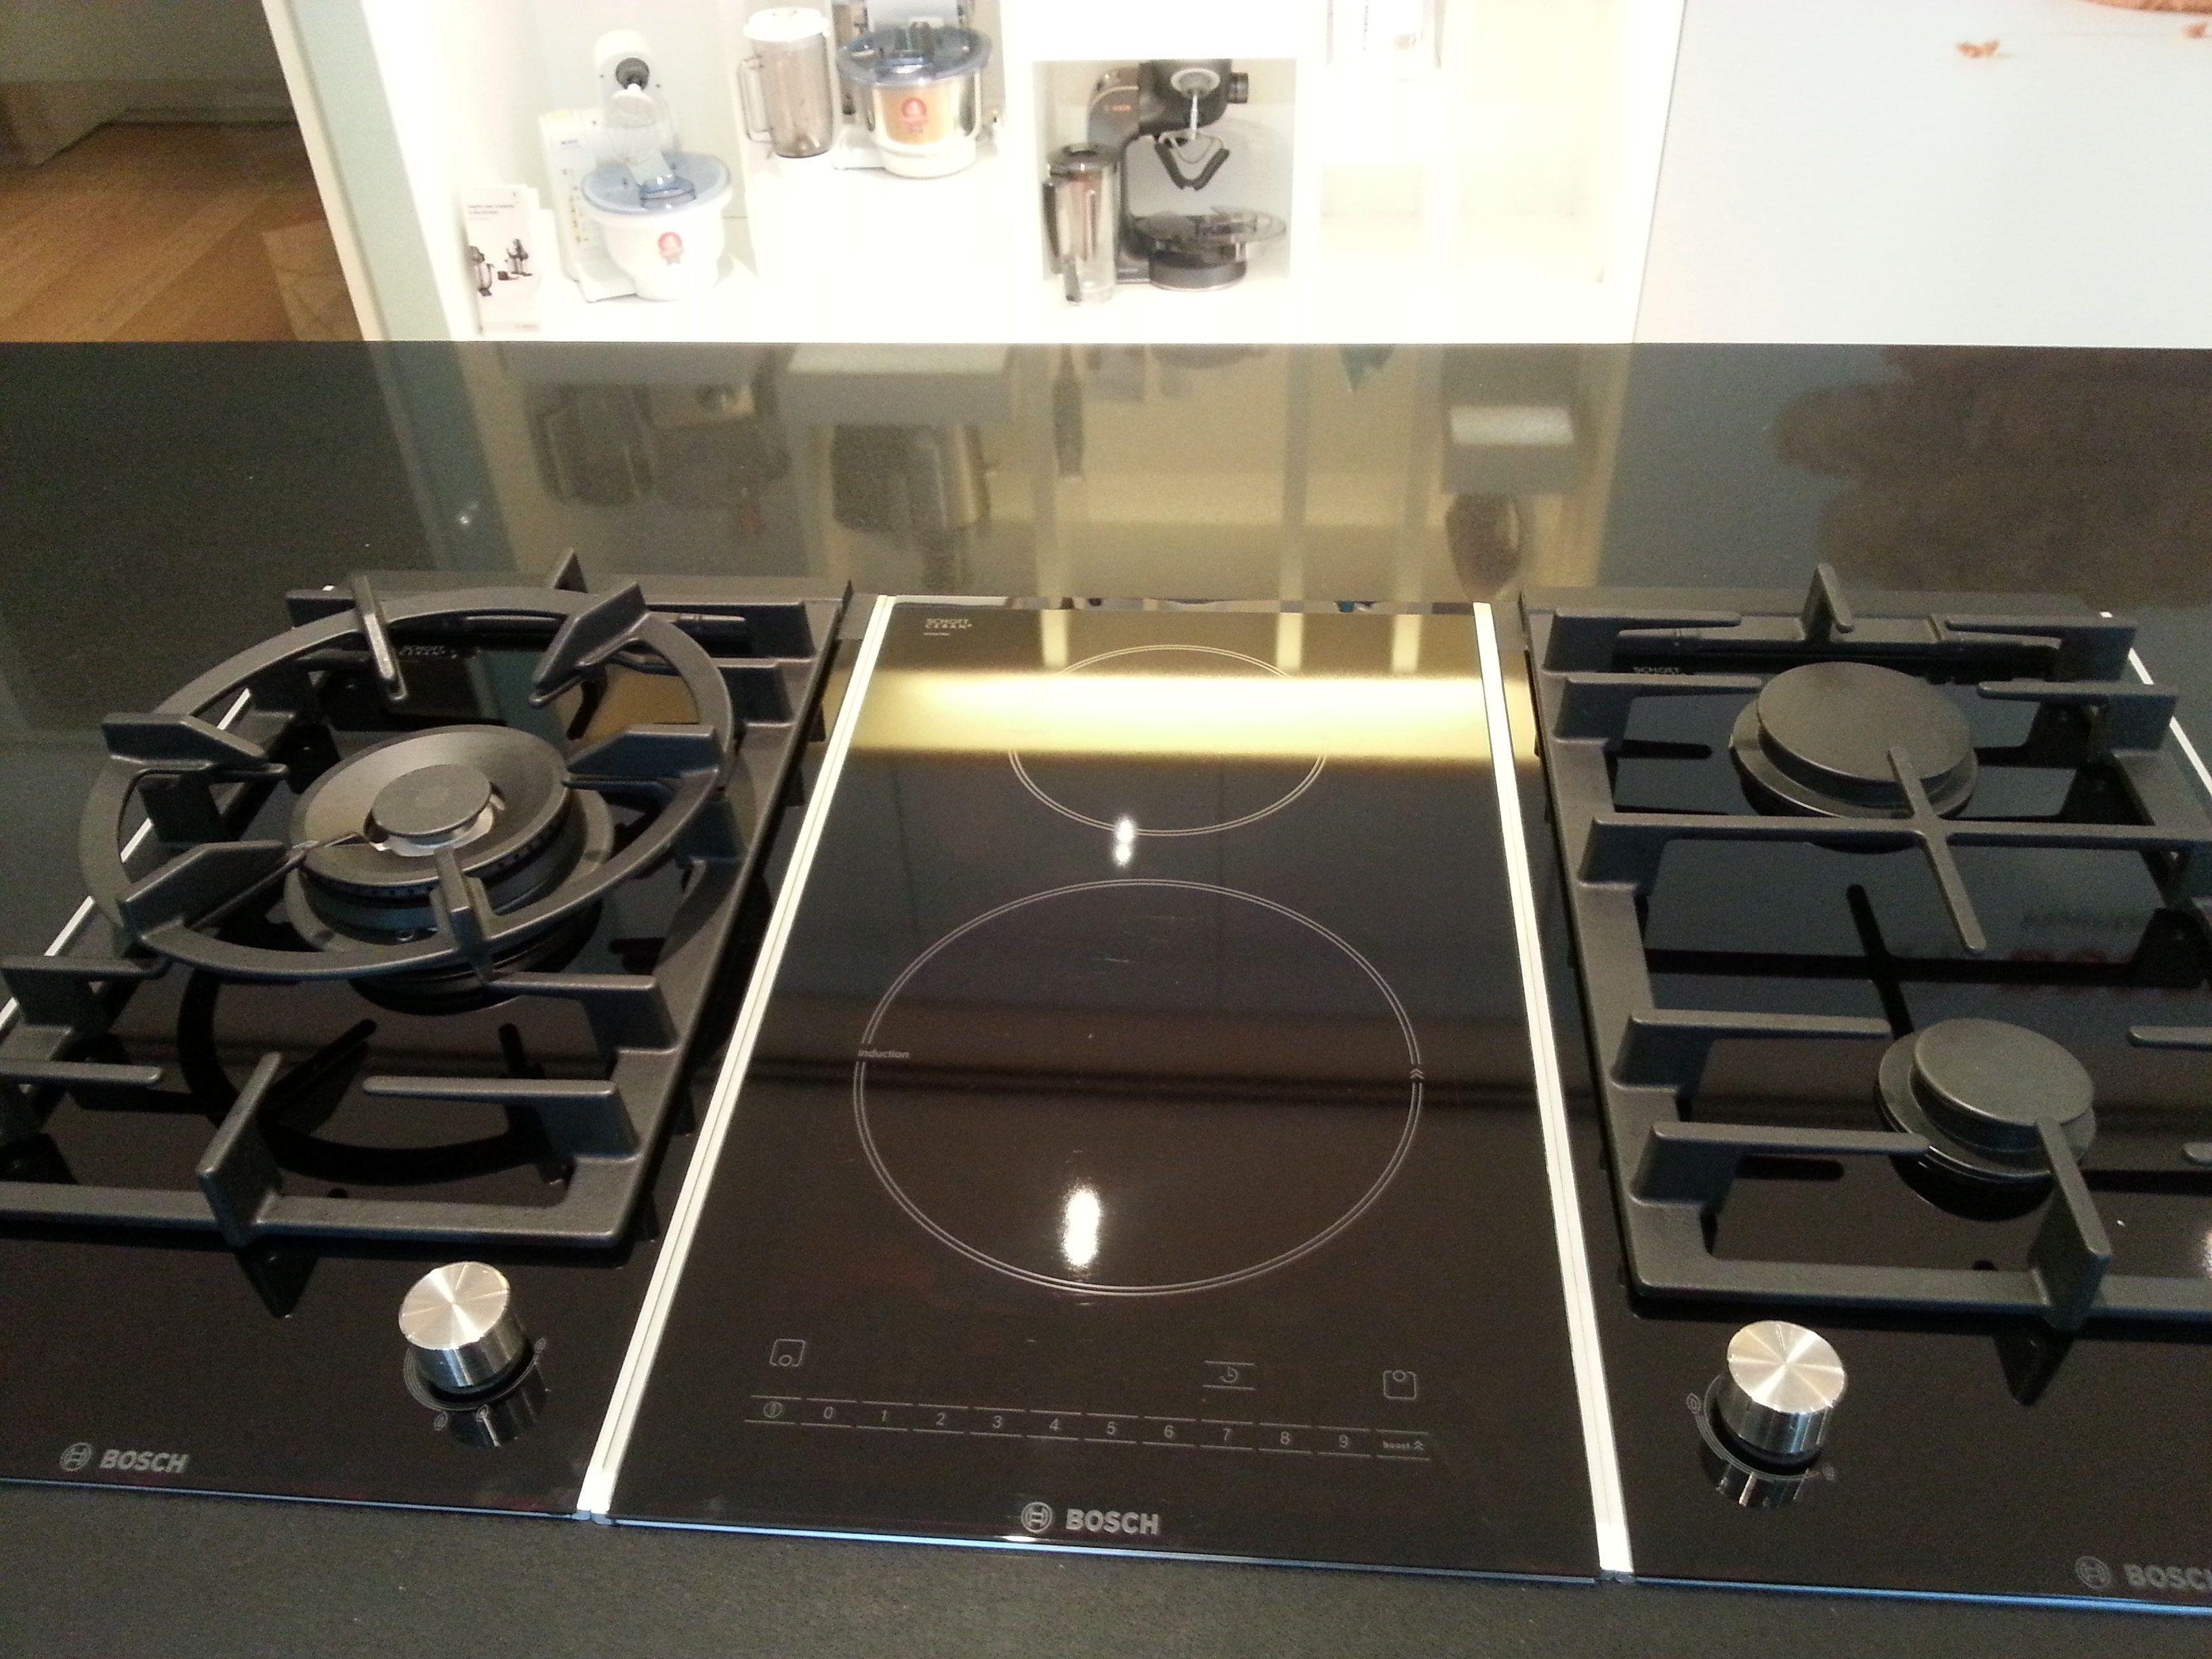 Induction And Gas Stove Modern Kitchen Gadgets New Kitchen Cabinets Interior Design Kitchen